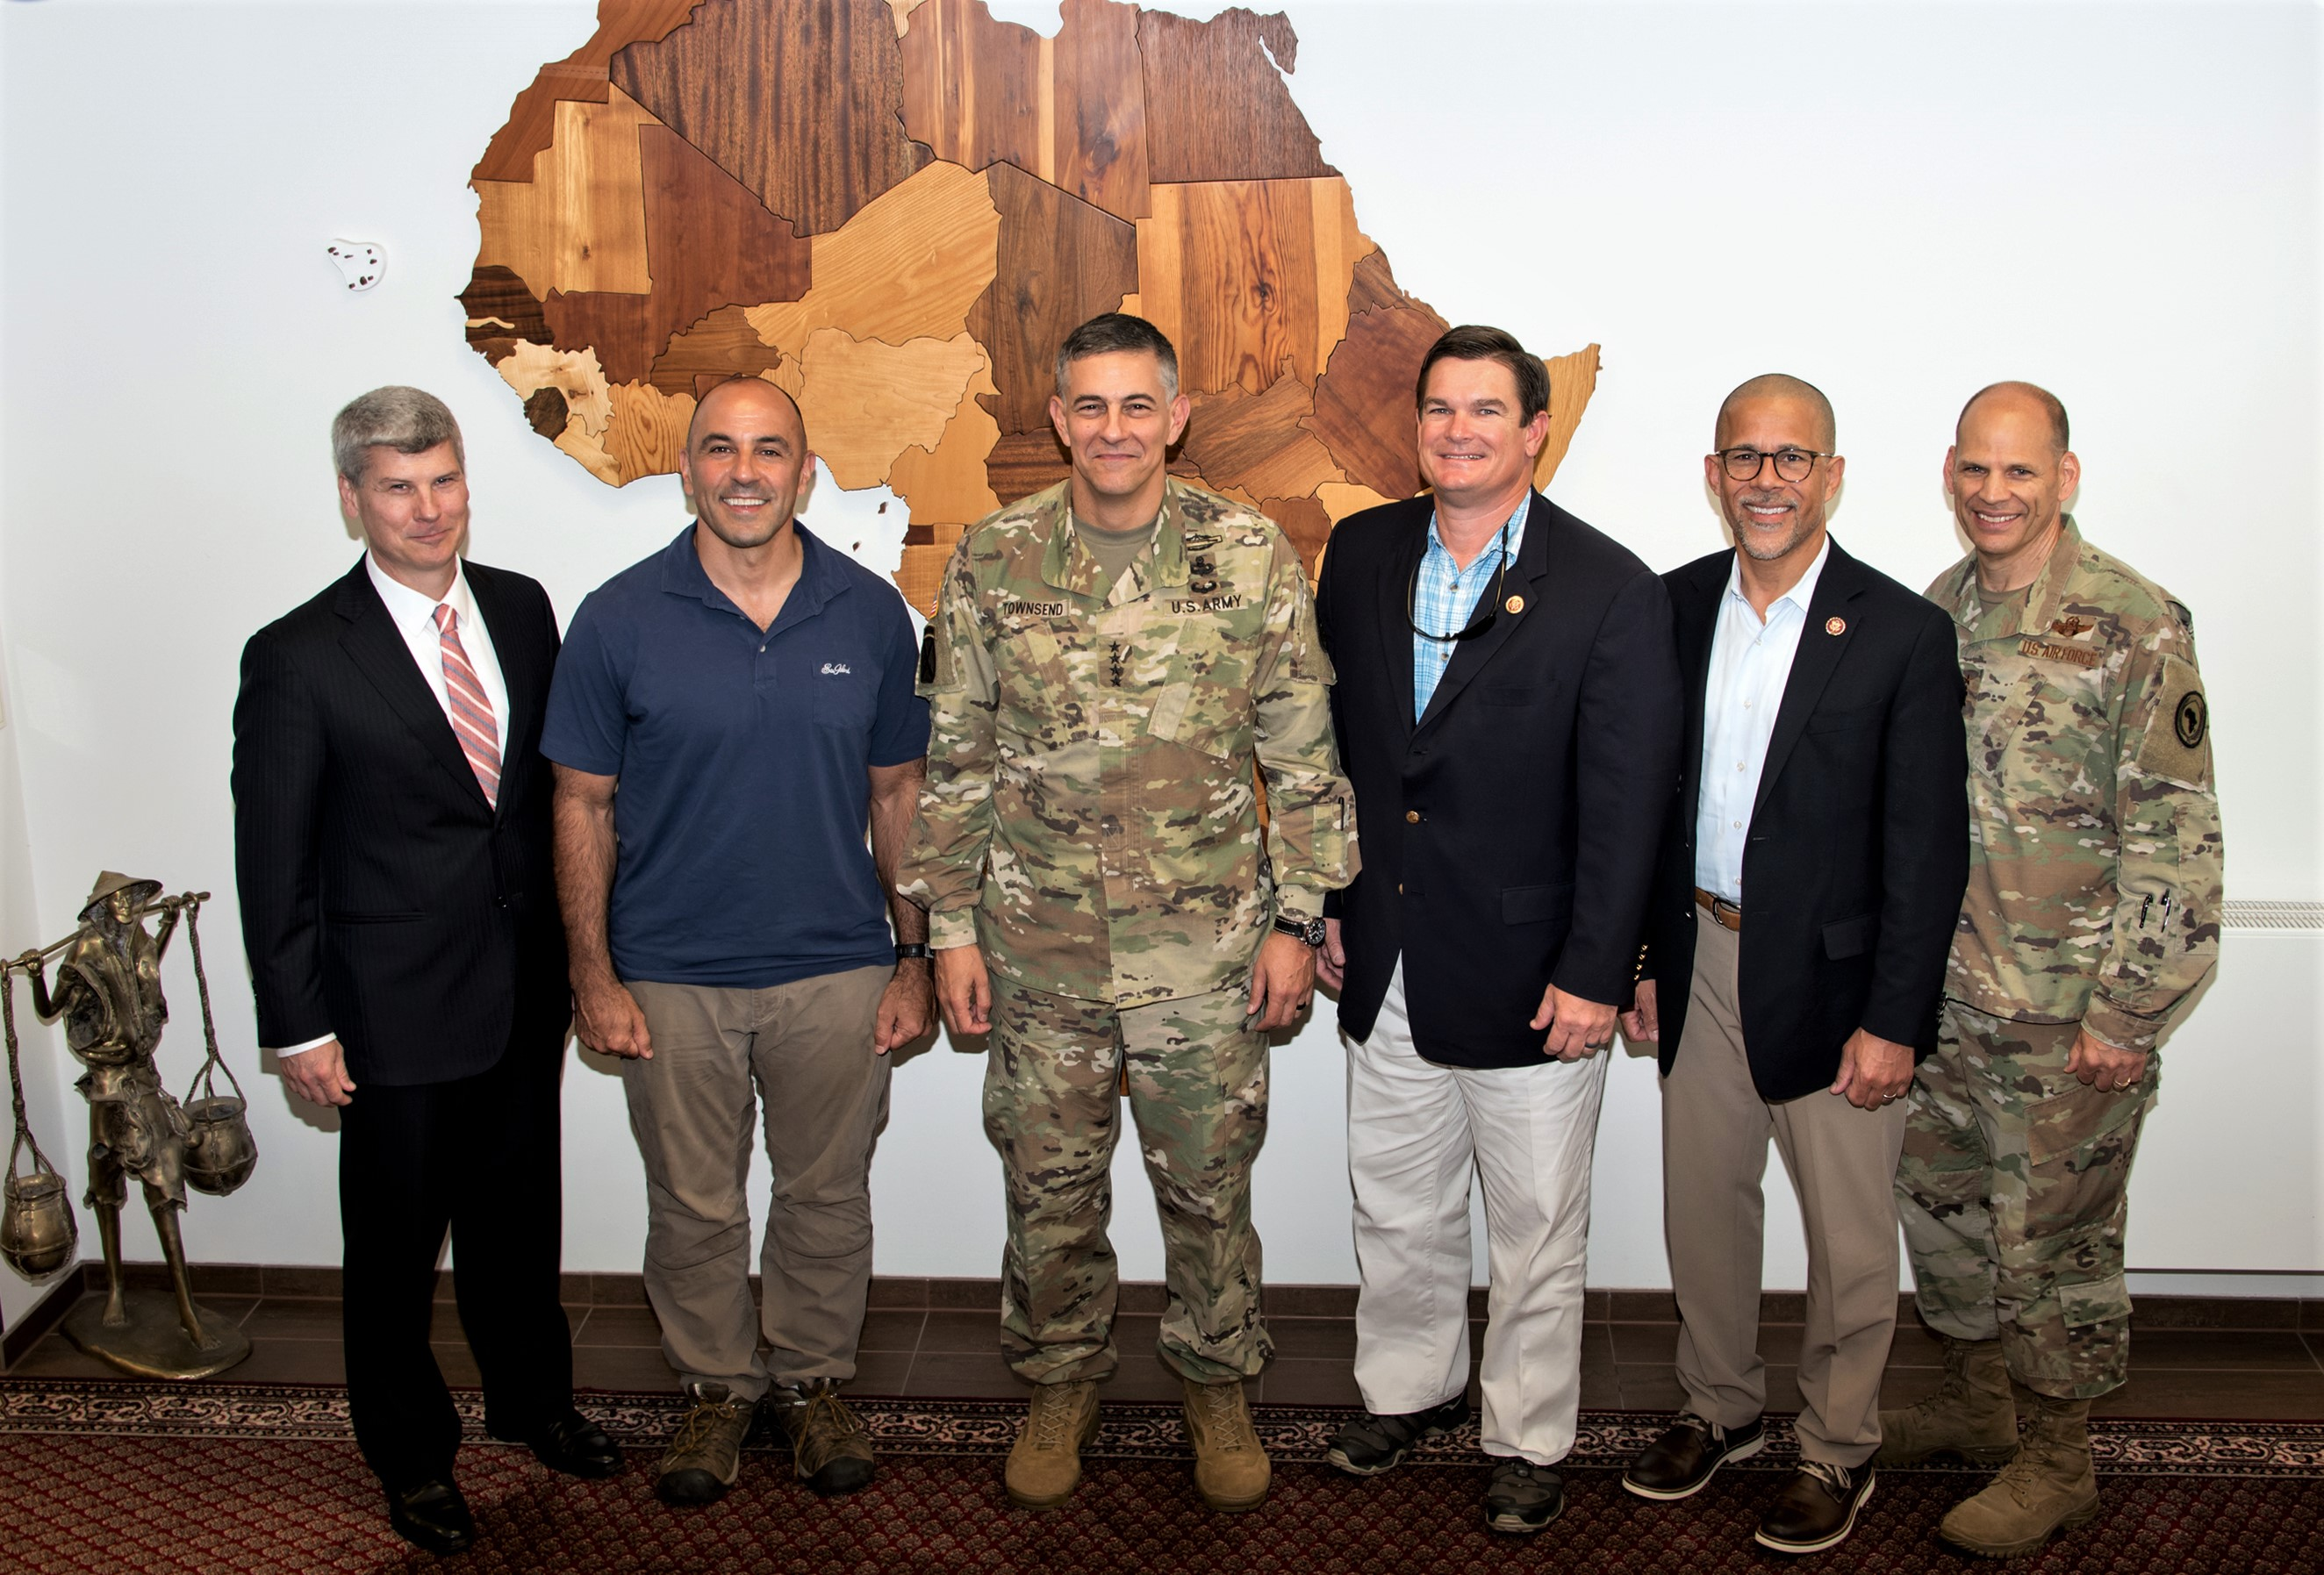 A congressional delegation poses with U.S Africa Command senior leaders during a tour Aug. 23, 2019. The visit led by Congresswoman Maxine Waters was to gain insight about how the command's operations and activities support the U.S. strategy for Africa. (U.S. Army photo by Takisha Miller/Released)